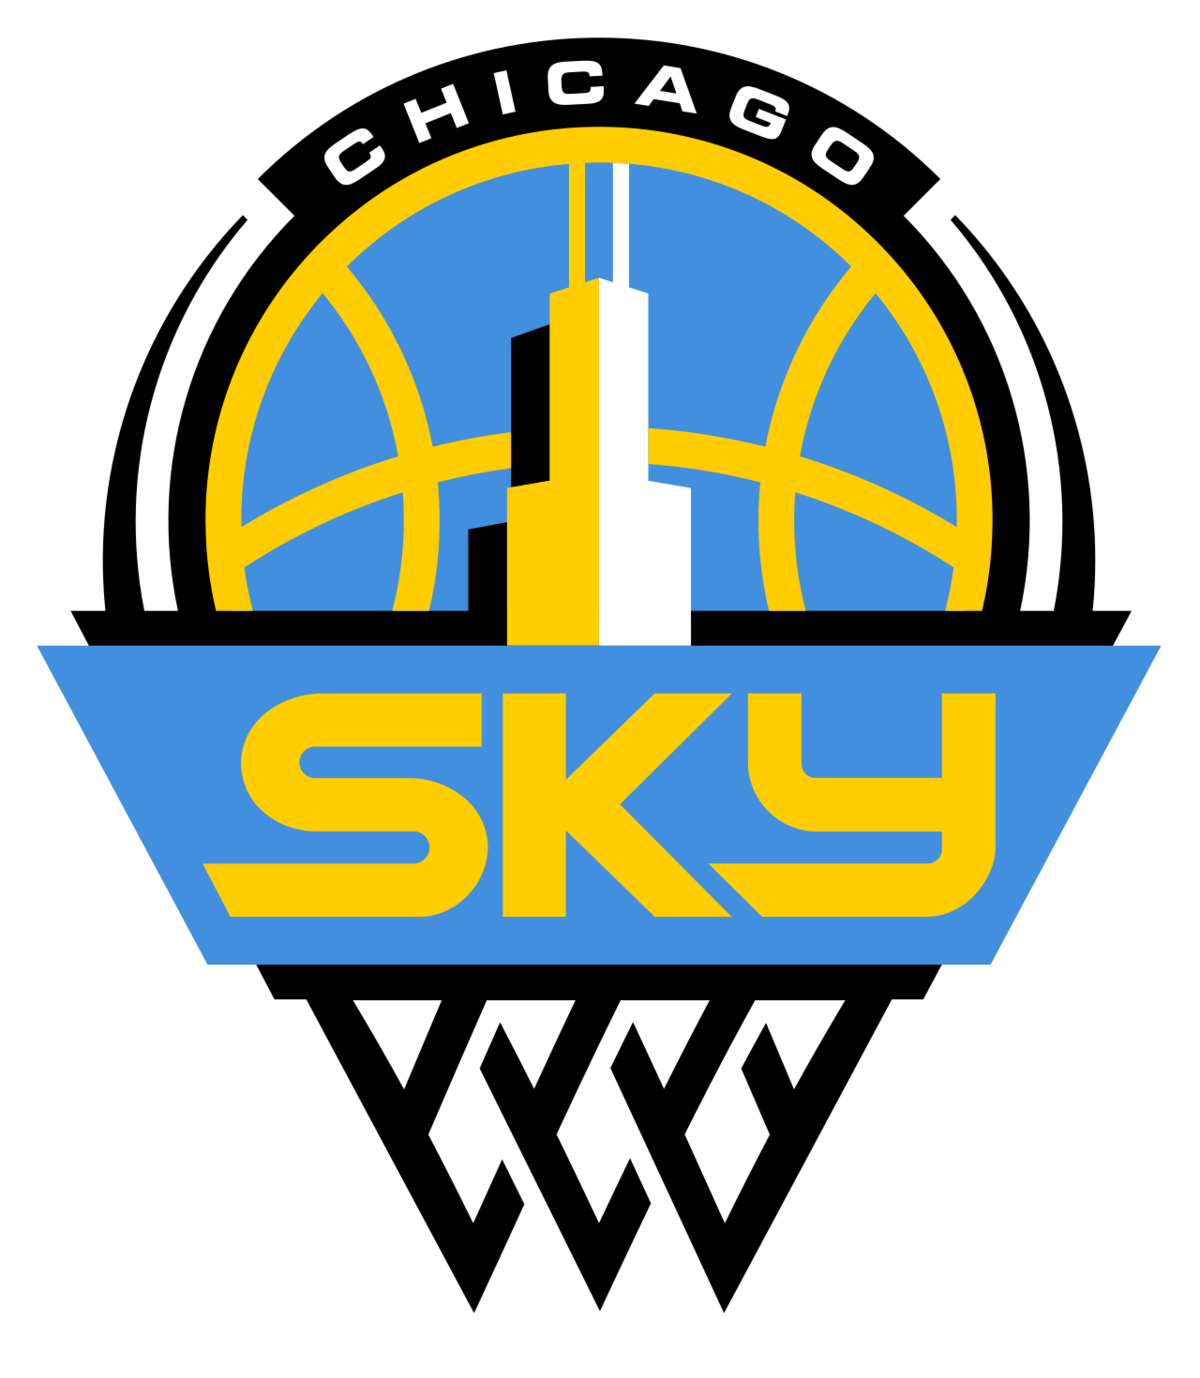 Programme TV Chicago Sky